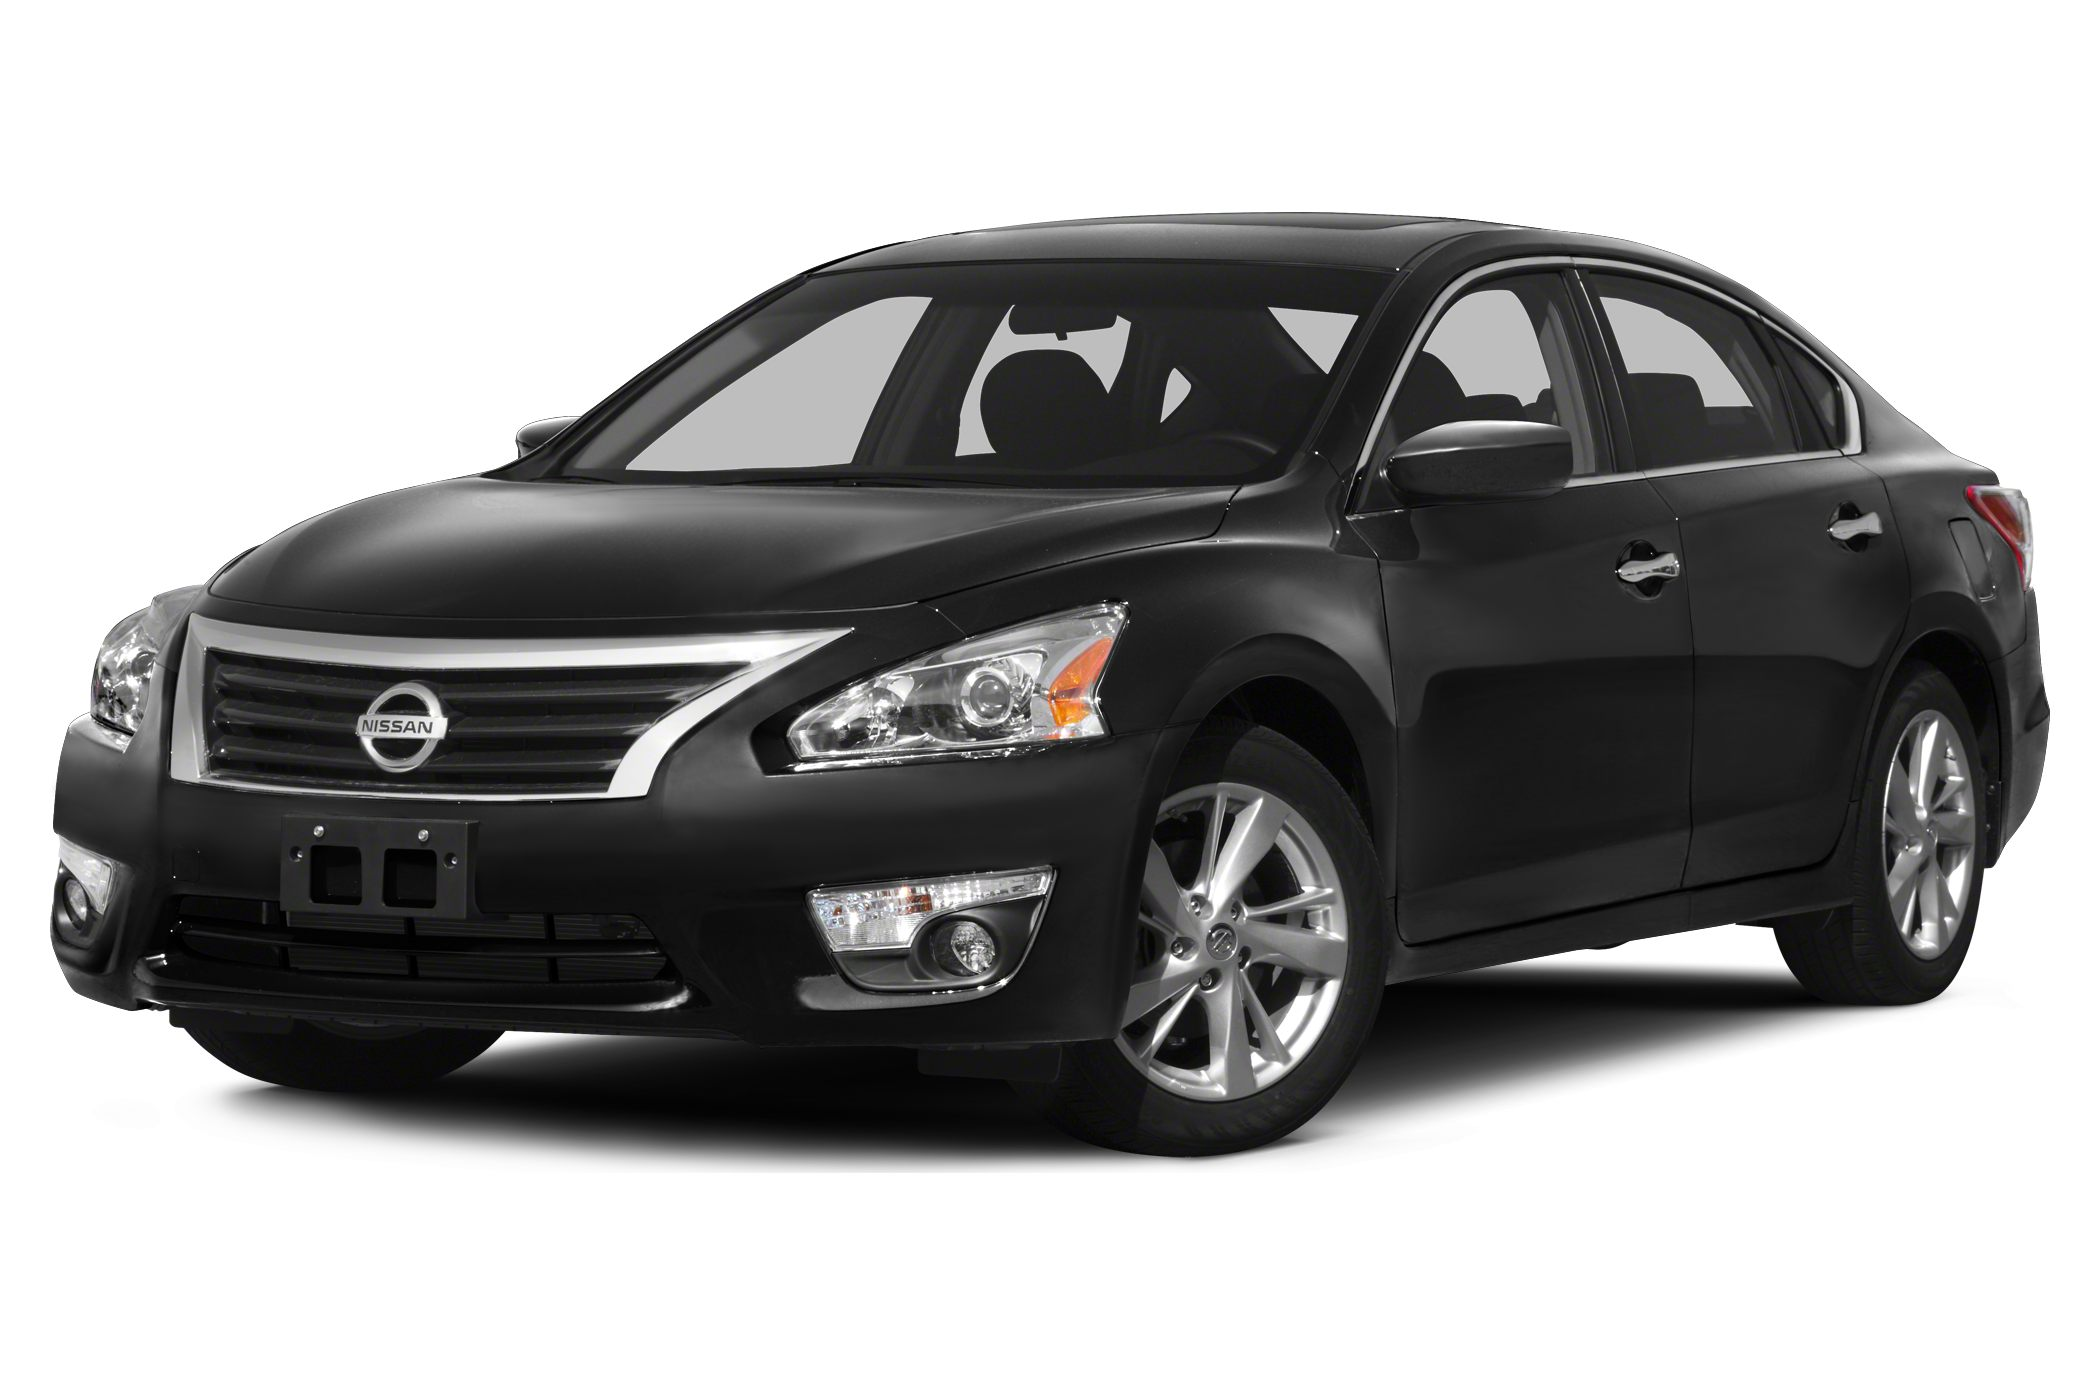 2015 Nissan Altima 2.5 SV Sedan for sale in Walnut Creek for $28,195 with 0 miles.